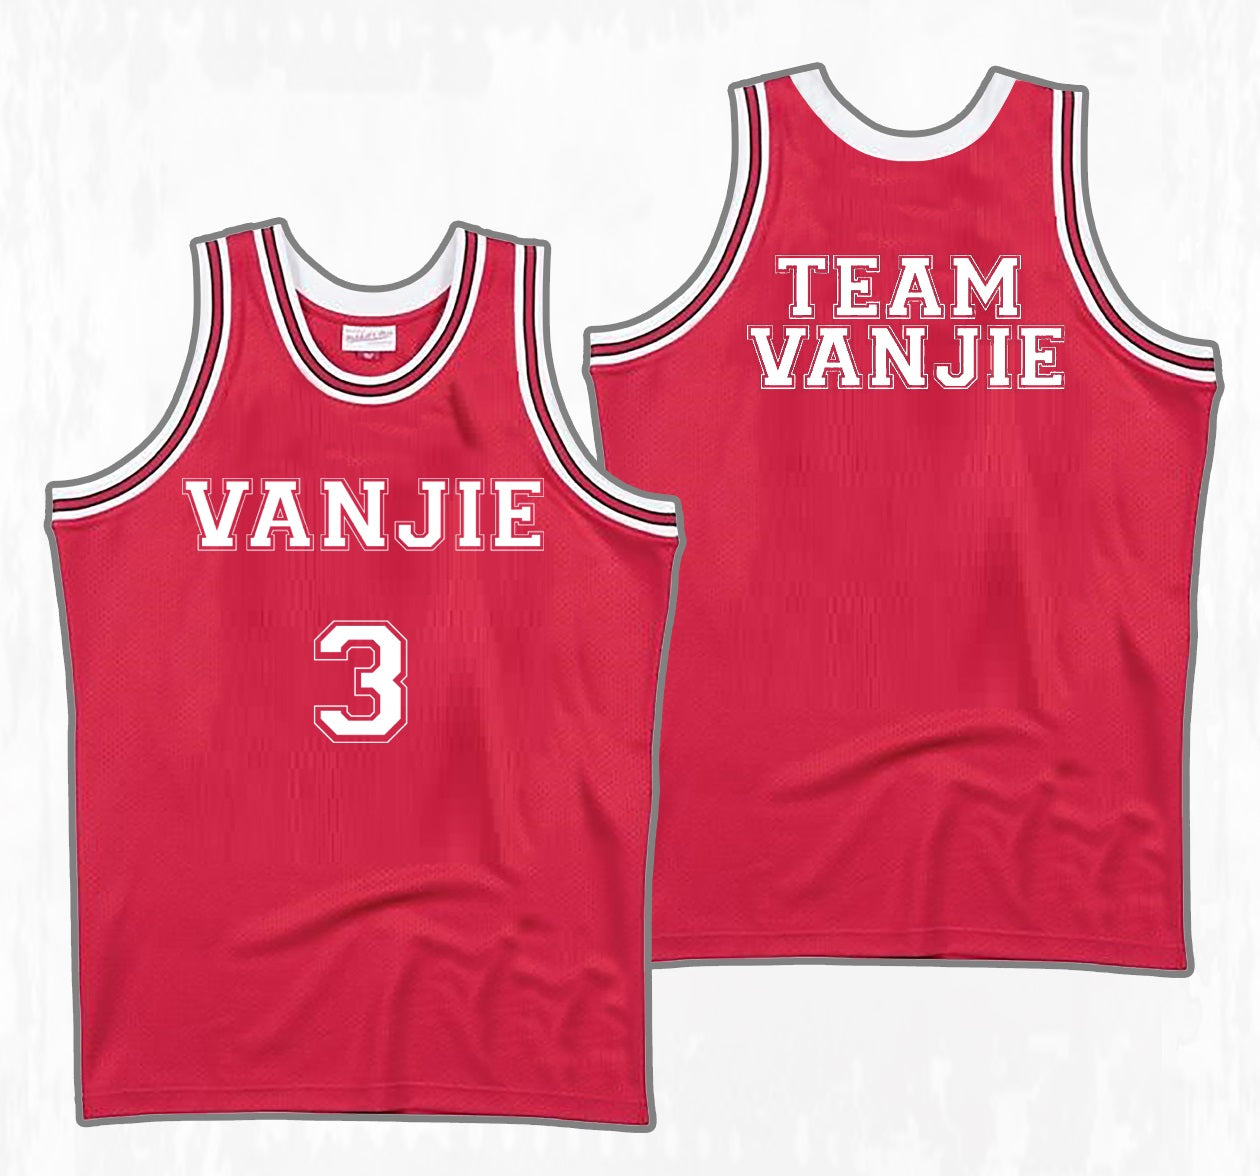 """TEAM VANJIE"" Oversized Jersey"